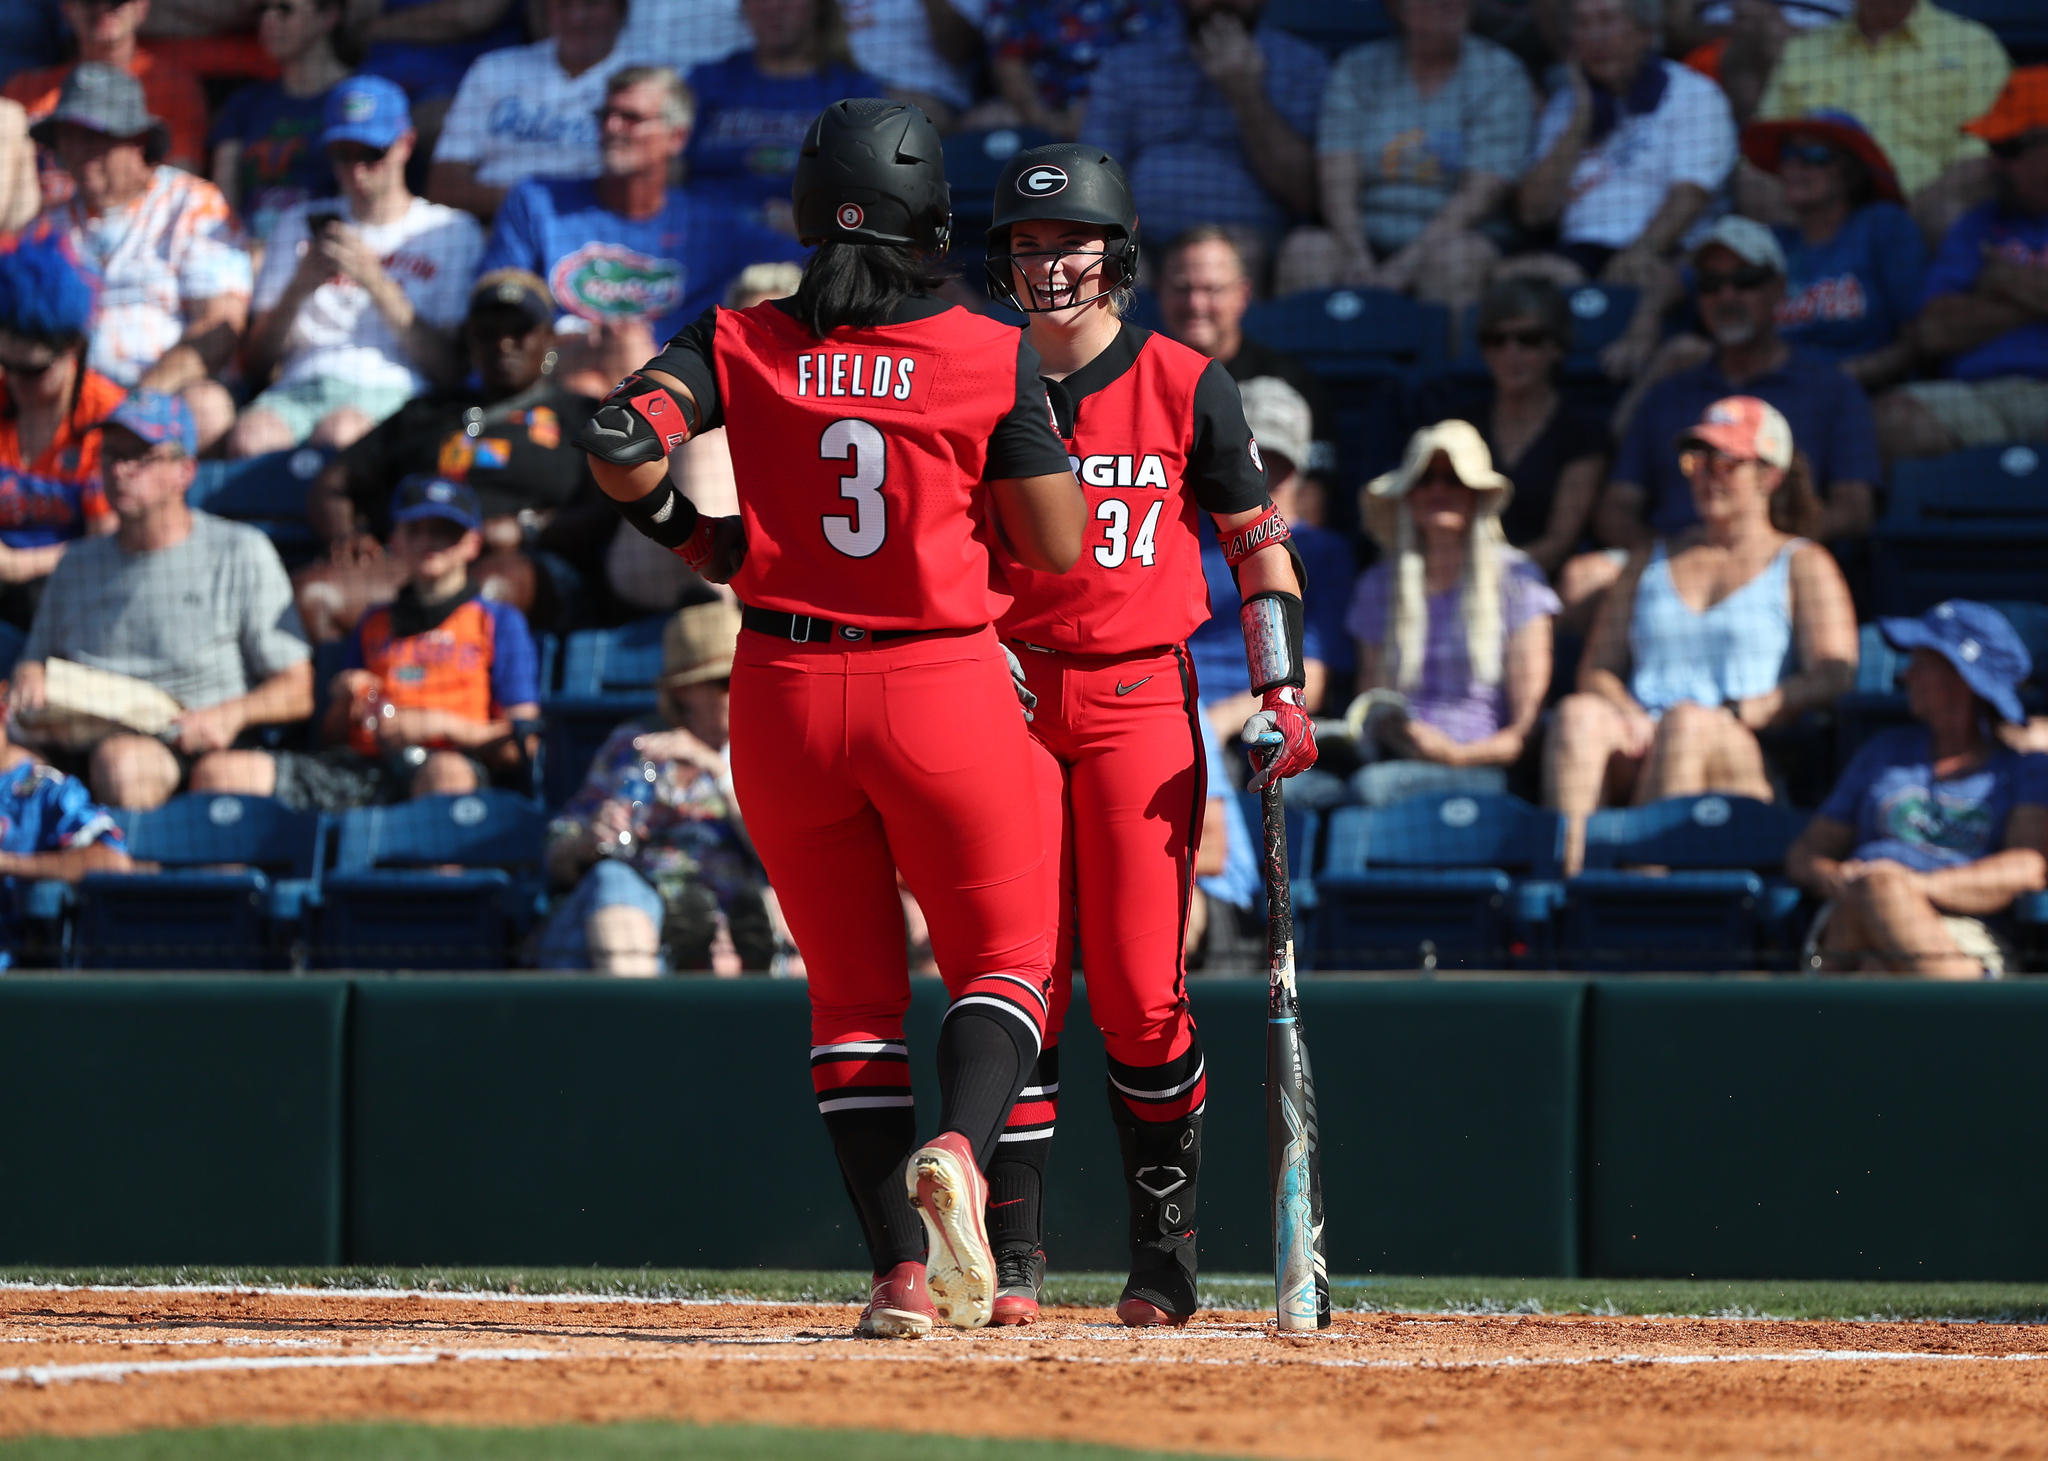 Georgia catcher Payden Bordeau (34), Georgia outfielder Jaiden Fields (3) during the Bulldogs' game against Florida on Friday, May 28, 2021 at Katie Seashole Pressly Softball Stadium in Gainesville, FL / UAA Communications photo by Hannah White